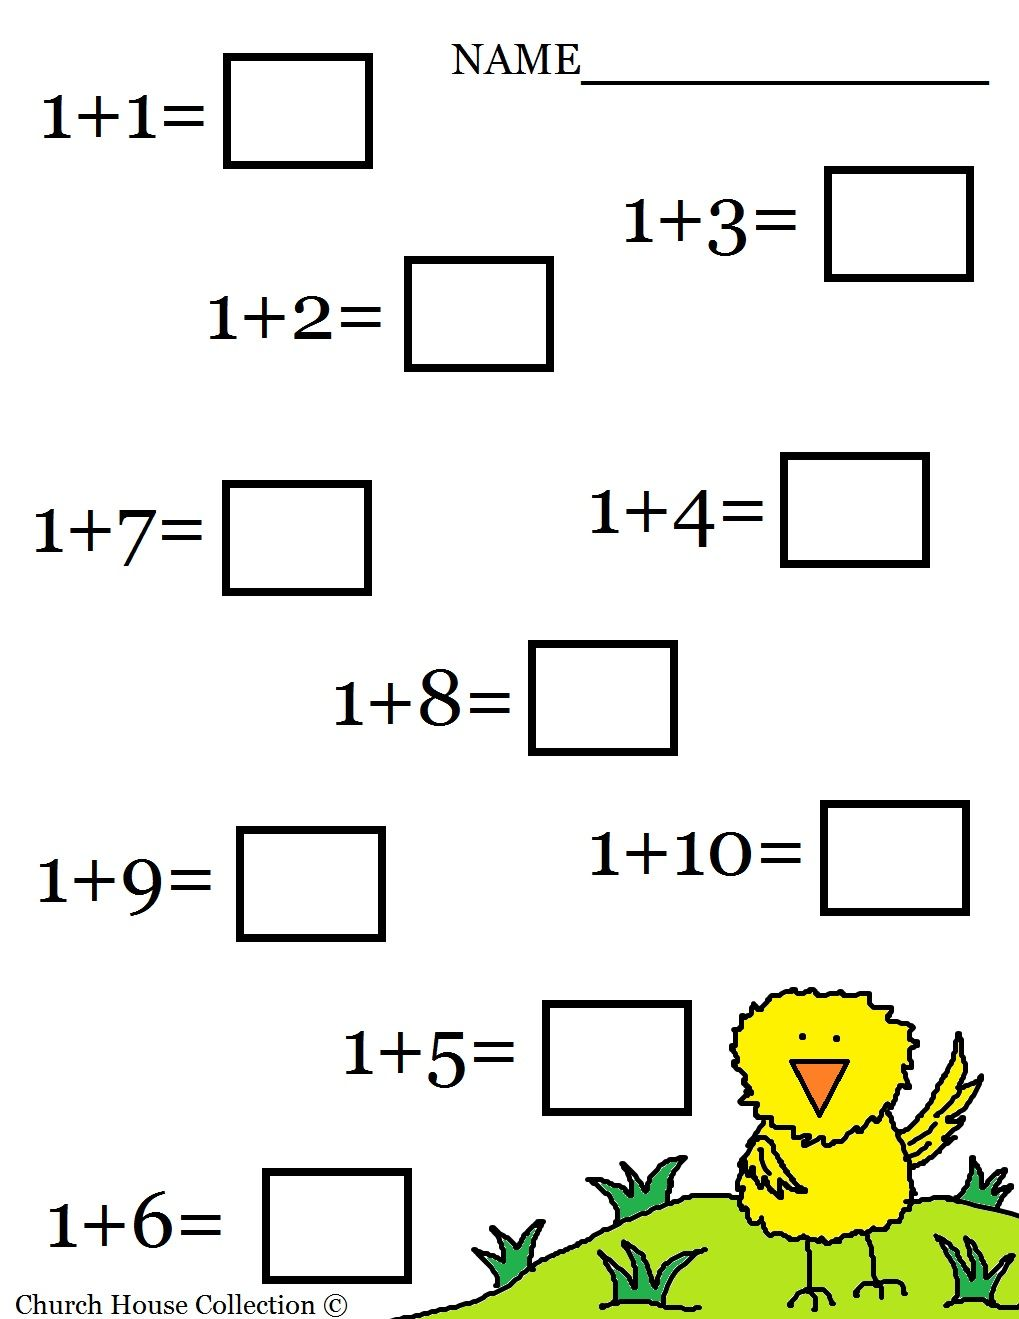 Aldiablosus  Pleasing  Images About Worksheets  Math On Pinterest  Math Sheets  With Great  Images About Worksheets  Math On Pinterest  Math Sheets Math Worksheets For Kindergarten And Simple Addition With Easy On The Eye Time Worksheet For Grade  Also Inverse Variation Worksheets In Addition Budget Online Worksheet And The Giraffe And The Pelly And Me Worksheets As Well As First Grade Blends Worksheets Additionally Solving Formulas For A Variable Worksheet From Pinterestcom With Aldiablosus  Great  Images About Worksheets  Math On Pinterest  Math Sheets  With Easy On The Eye  Images About Worksheets  Math On Pinterest  Math Sheets Math Worksheets For Kindergarten And Simple Addition And Pleasing Time Worksheet For Grade  Also Inverse Variation Worksheets In Addition Budget Online Worksheet From Pinterestcom